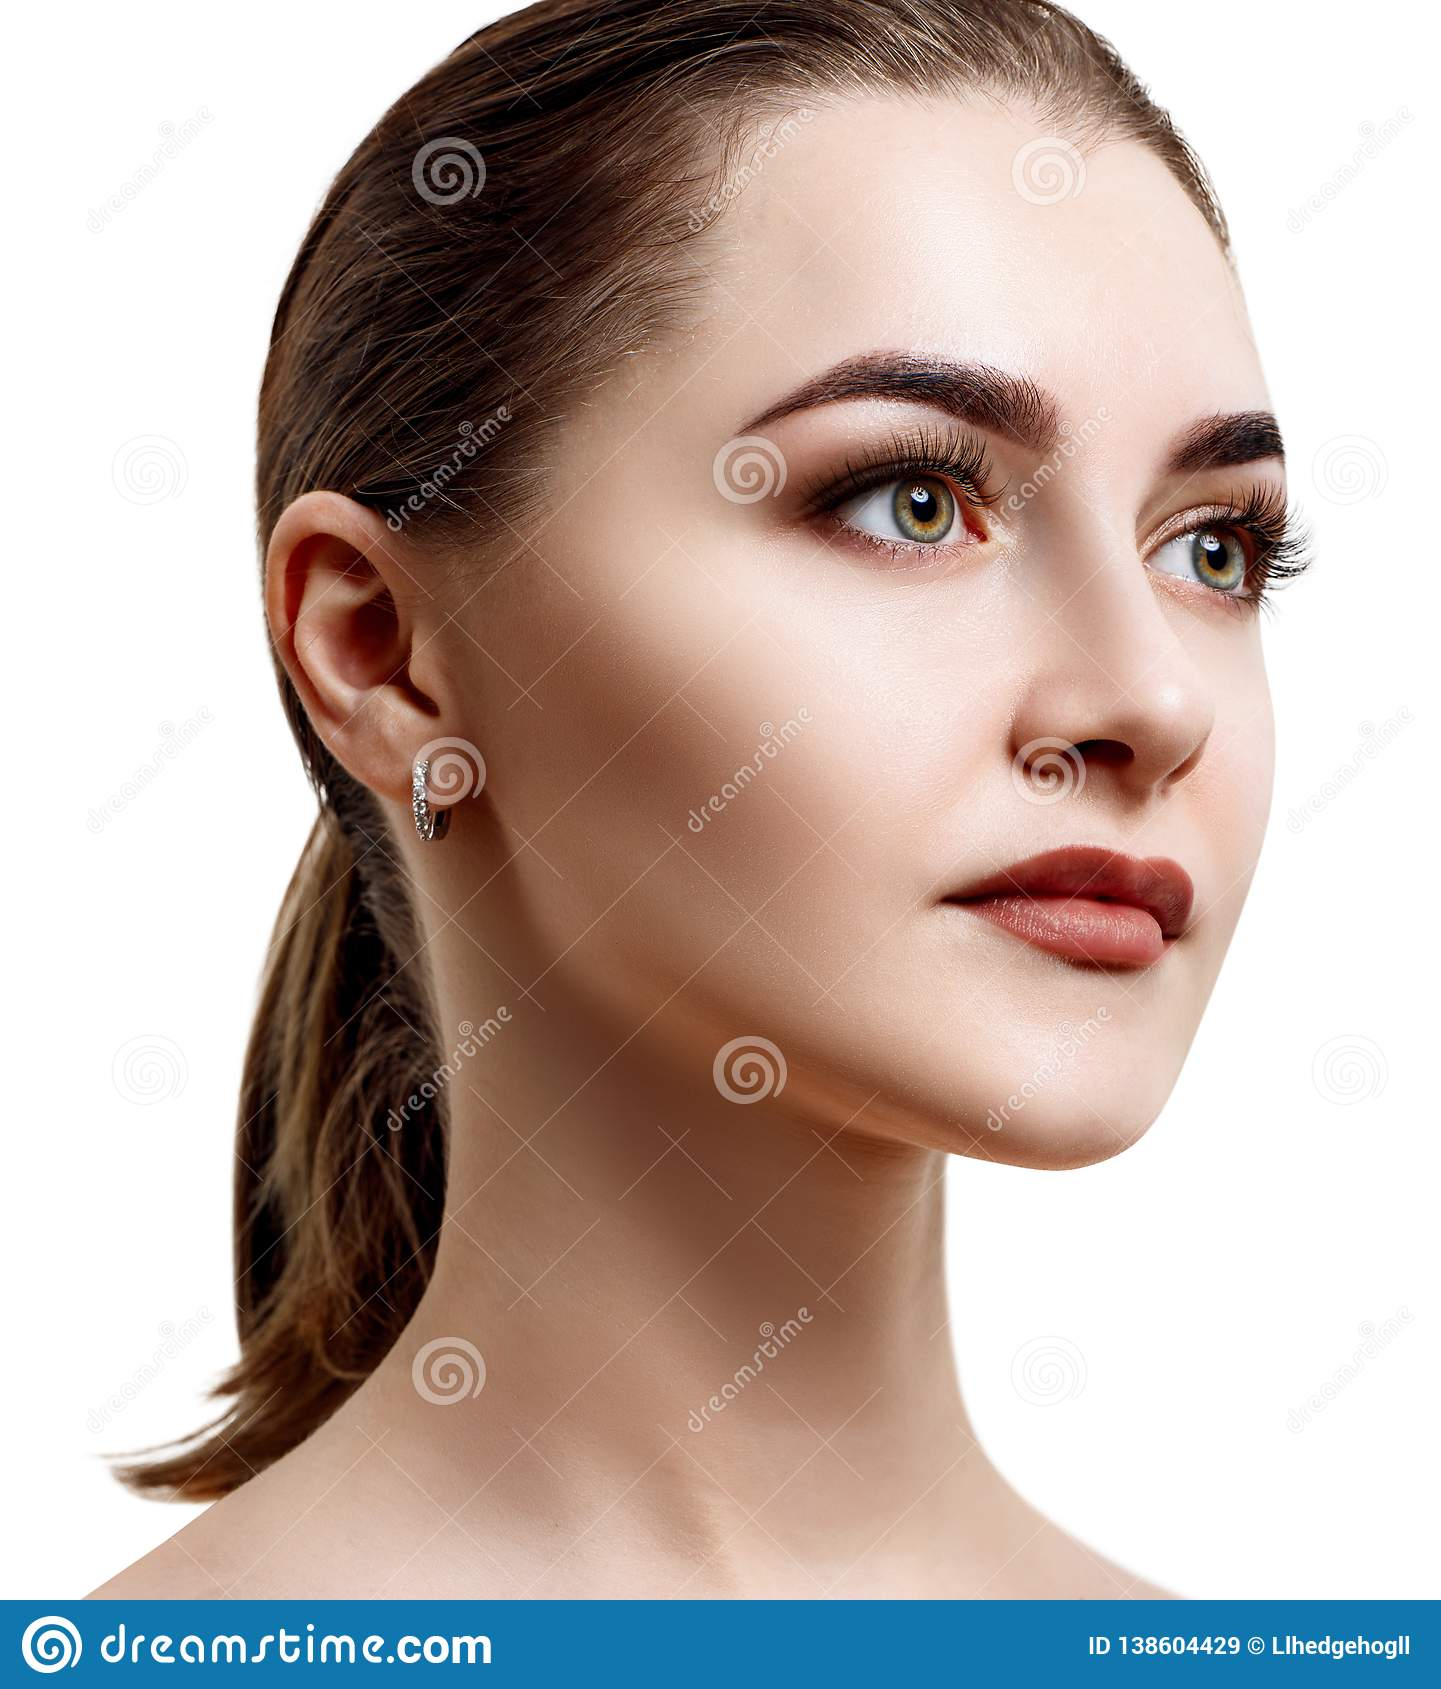 Side View On Beautiful Female Face With Perfect Skin